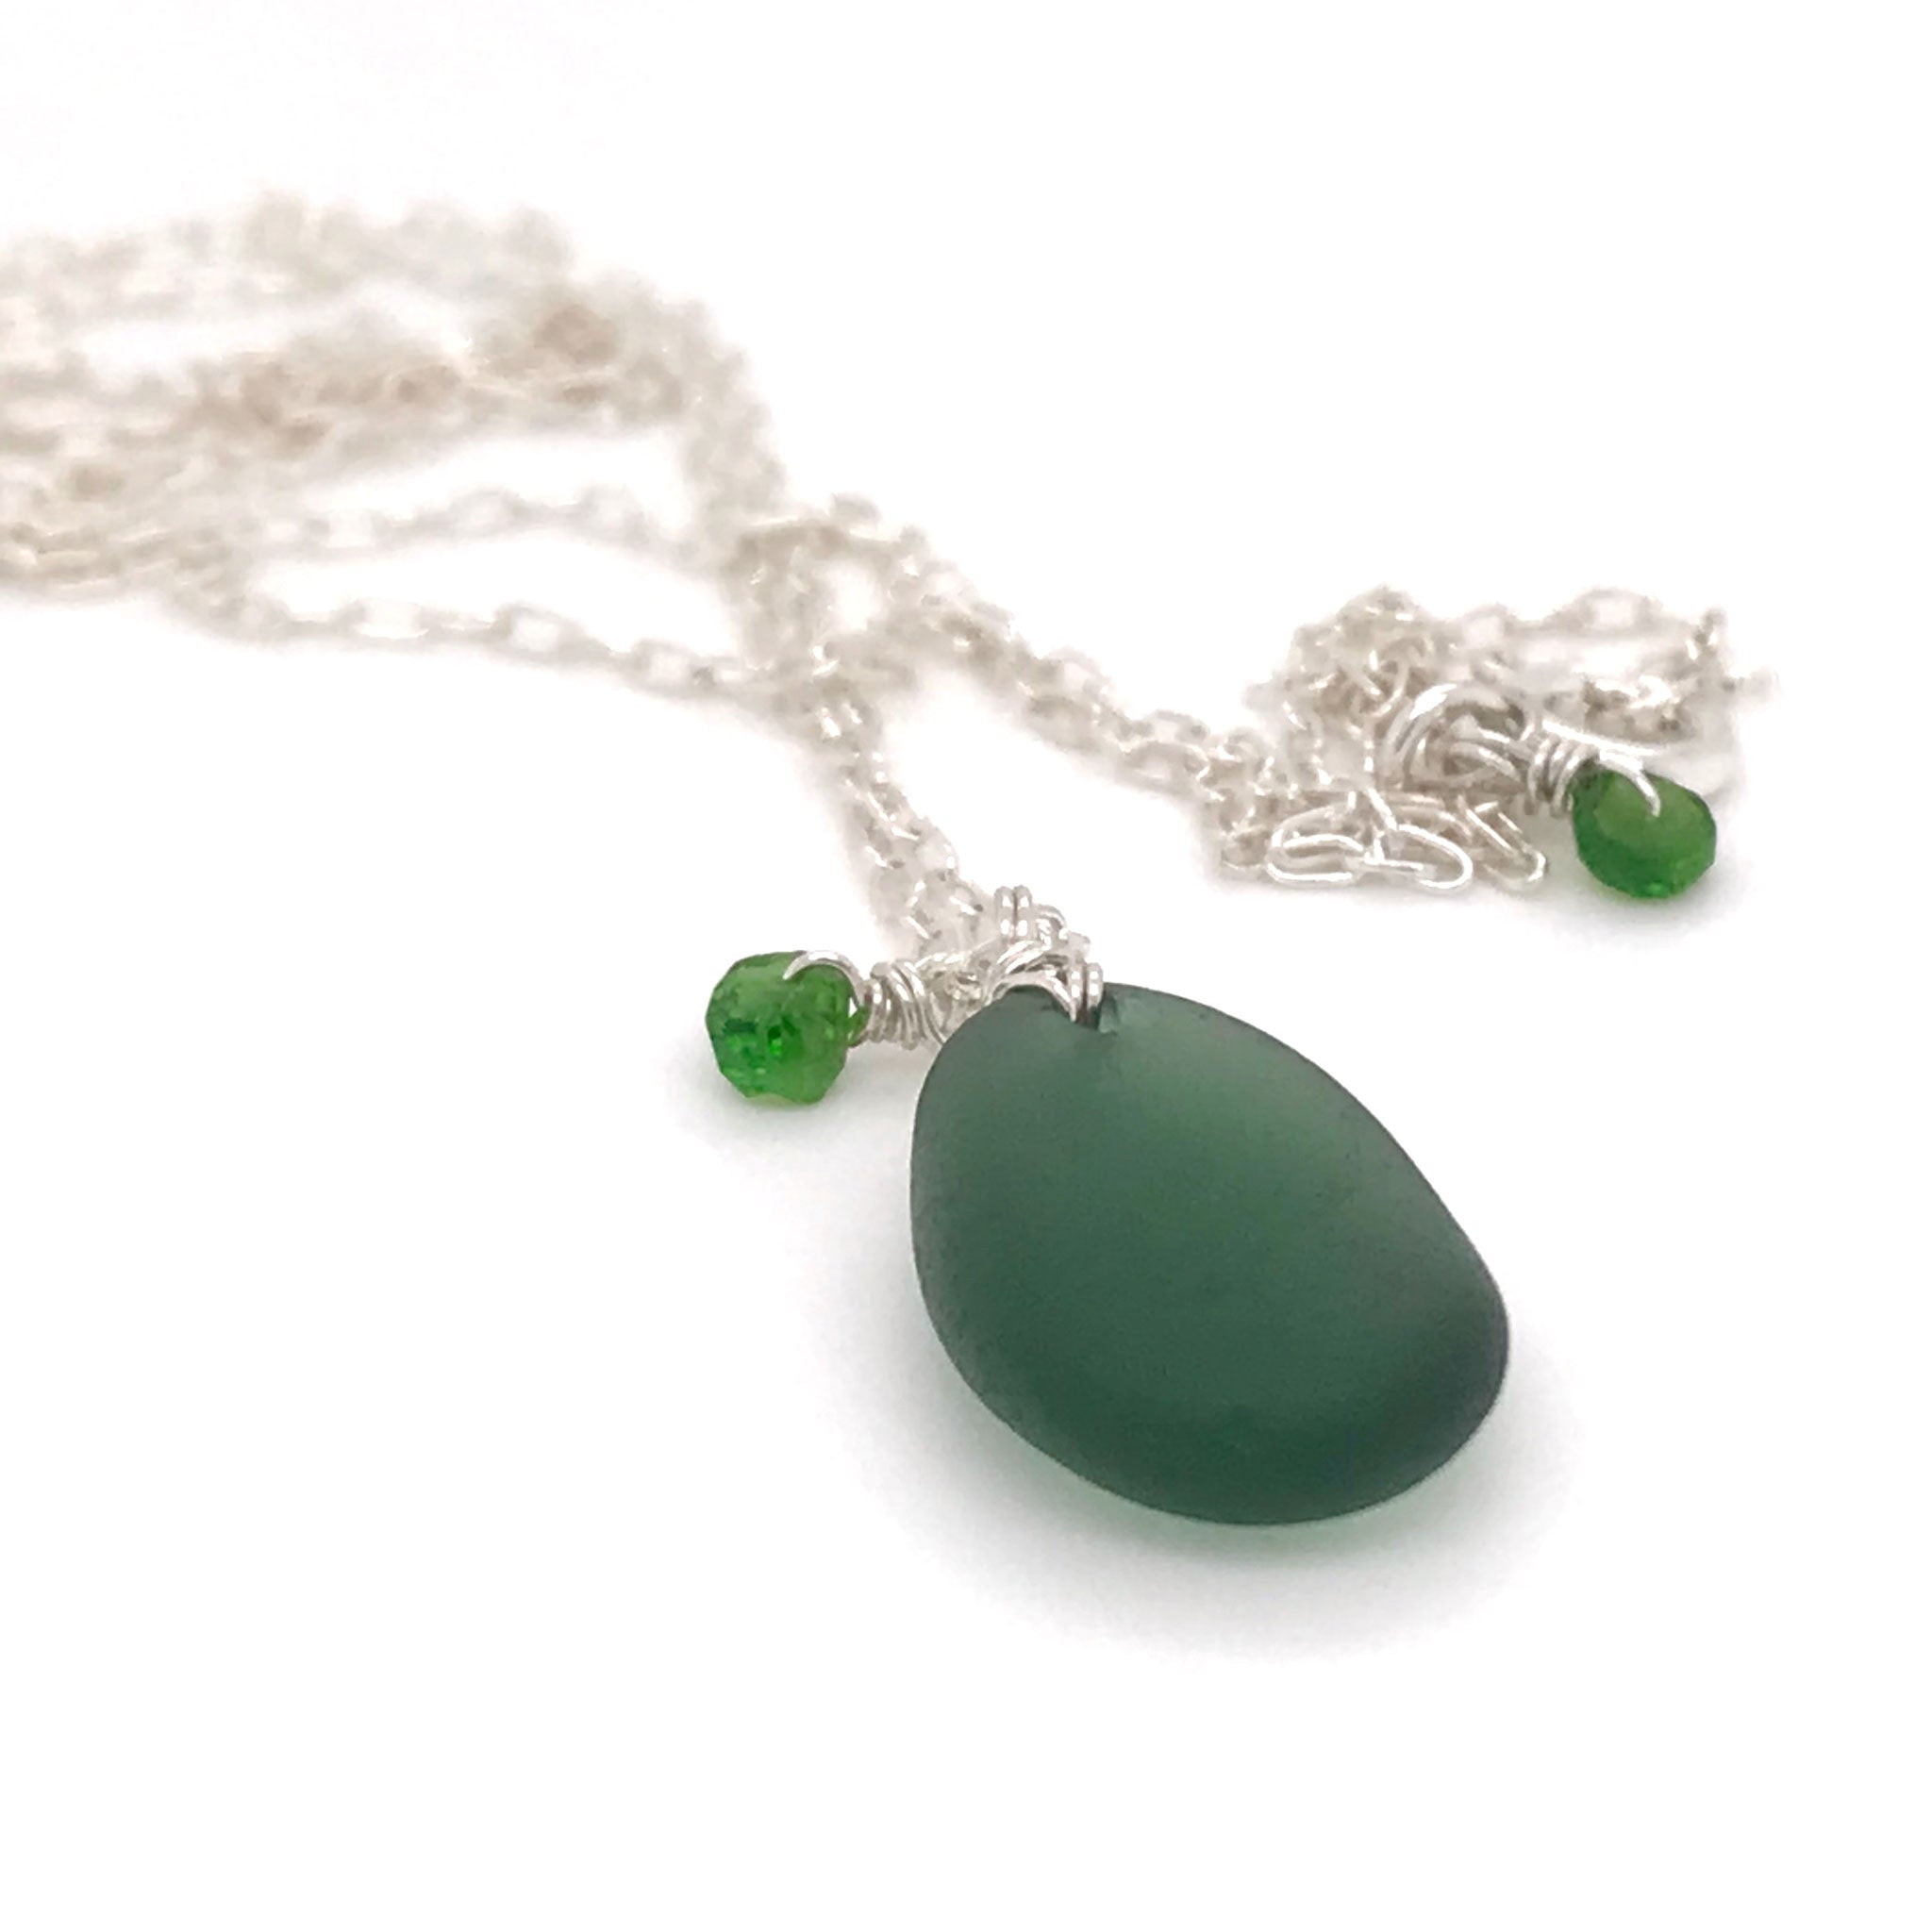 green seaglass necklace sterling silver with tsavorites  kriket Broadhurst jewellery